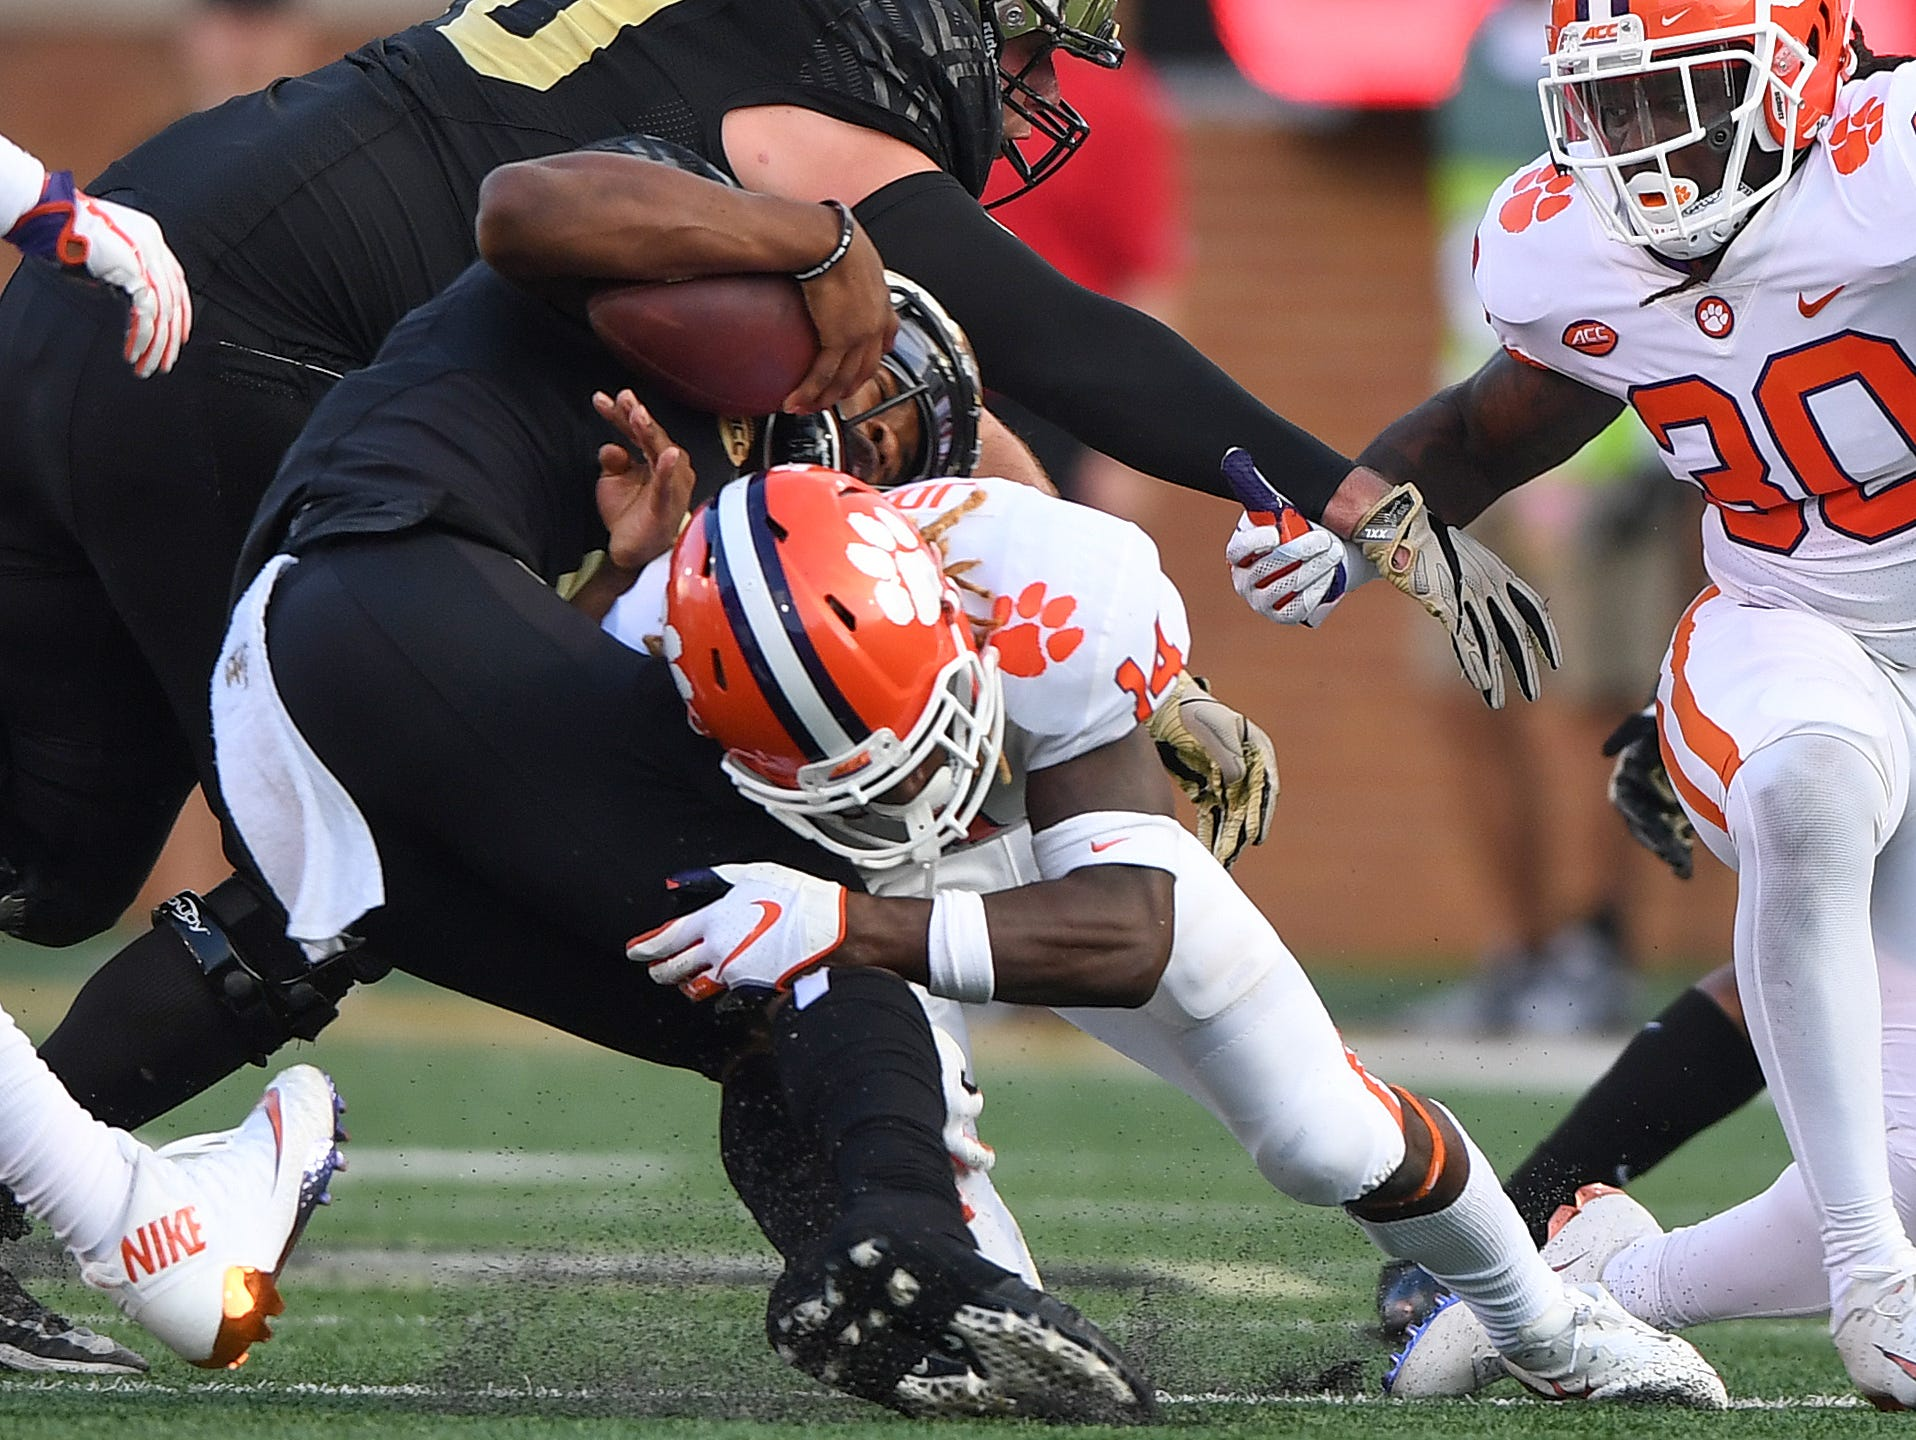 Clemson safety Denzel Johnson (14) brings down Wake Forest quarterback Kendall Hinton (2) during the 3rd quarter at BB&T Field in Winston Salem, N.C. Saturday, October 6, 2018.